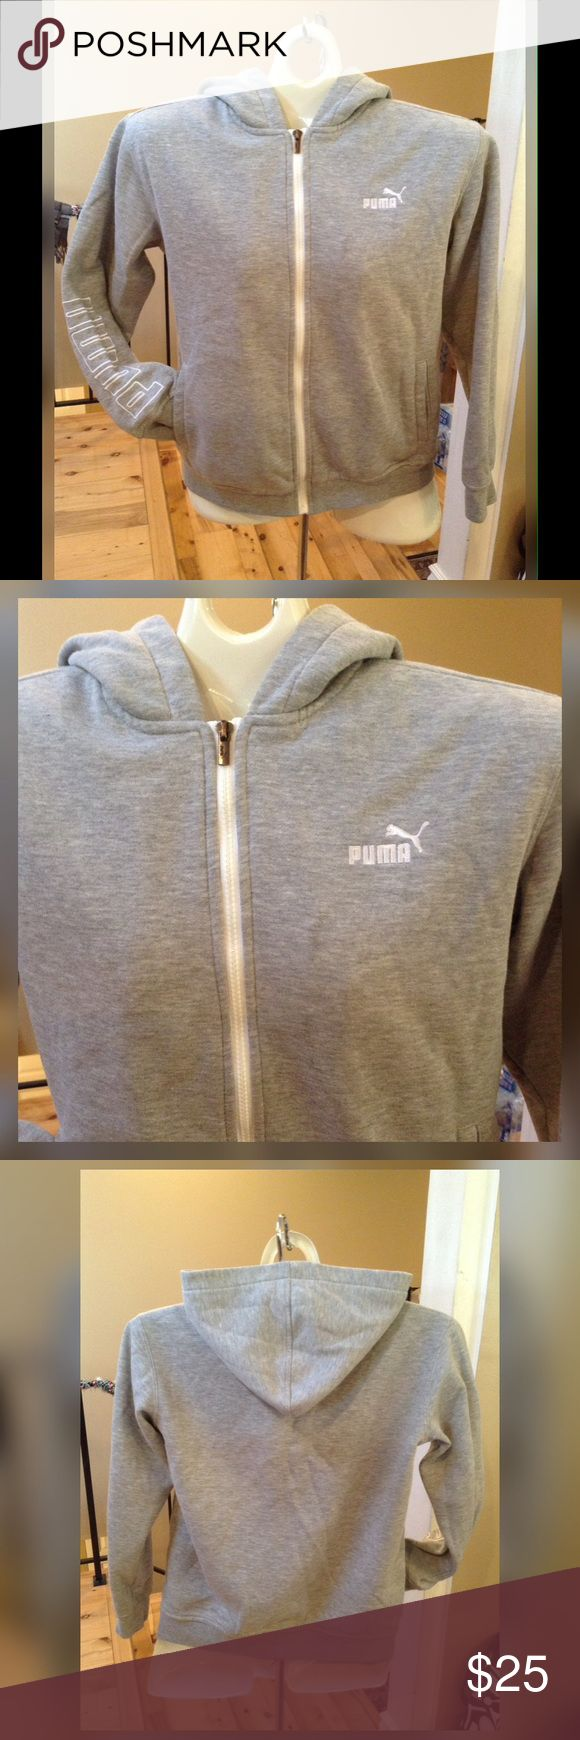 Puma Hoodie, Boys size small. Grey full zip boys hoodie with puma symbol over left chest and puma spelled on the right sleeve. This is a nice heavier weight hoodie perfect for spring and fall. EUC, no flaws. Puma Jackets & Coats